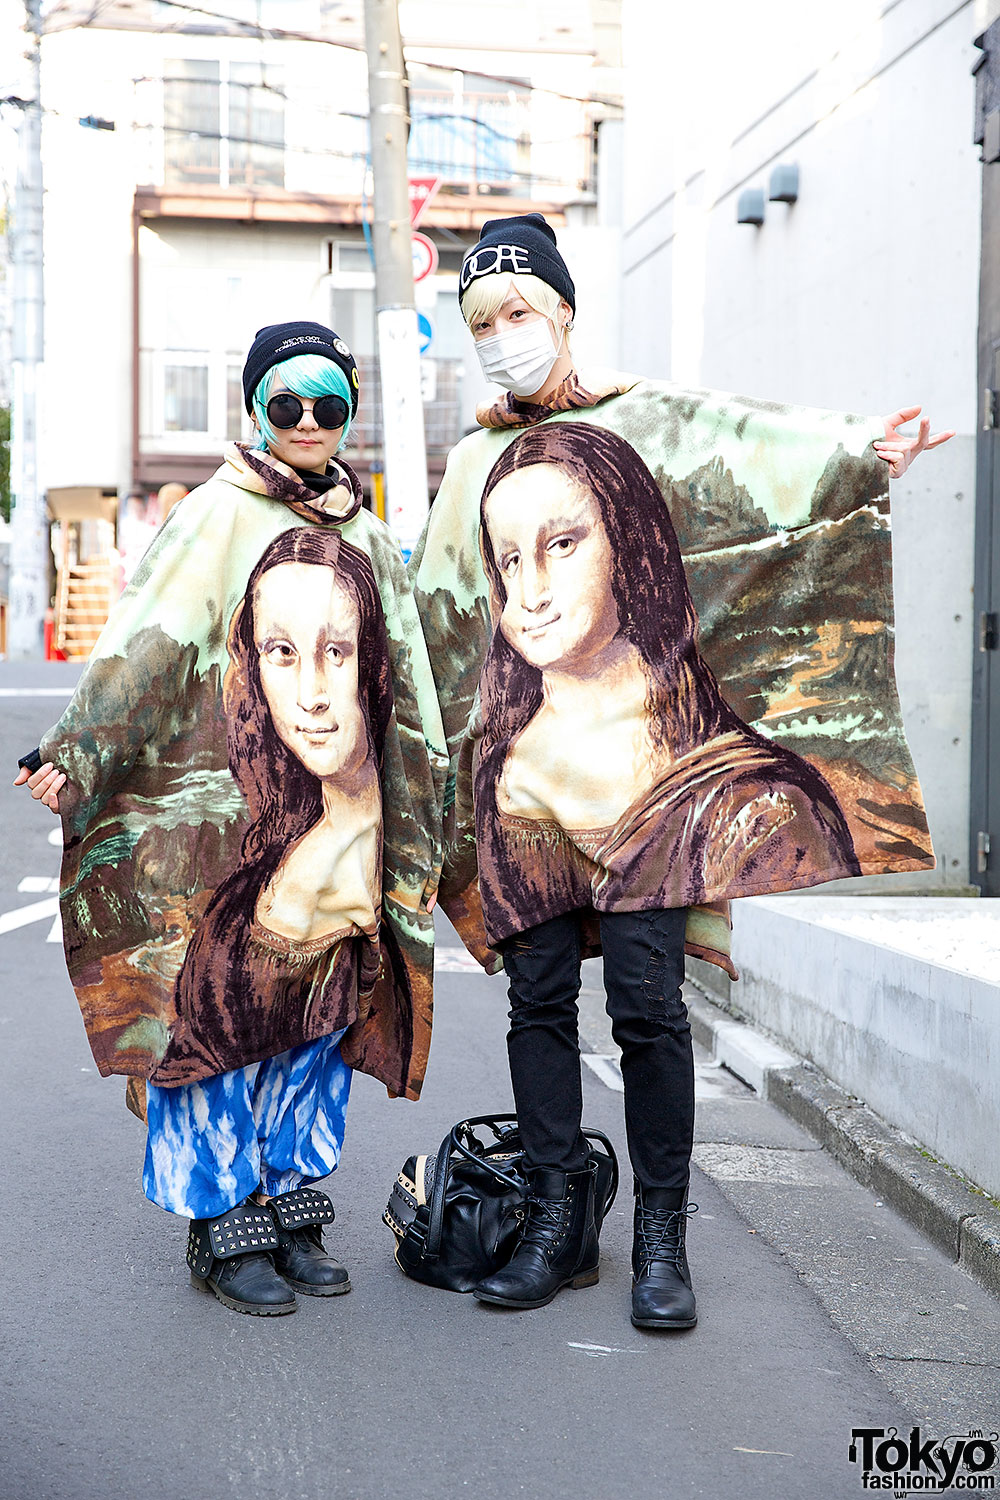 Dog Harajuku Fashion Fangophilia Rings Myob Nyc Bag: Lady Gaga Fans In Mona Lisa Ponchos From Dog Harajuku